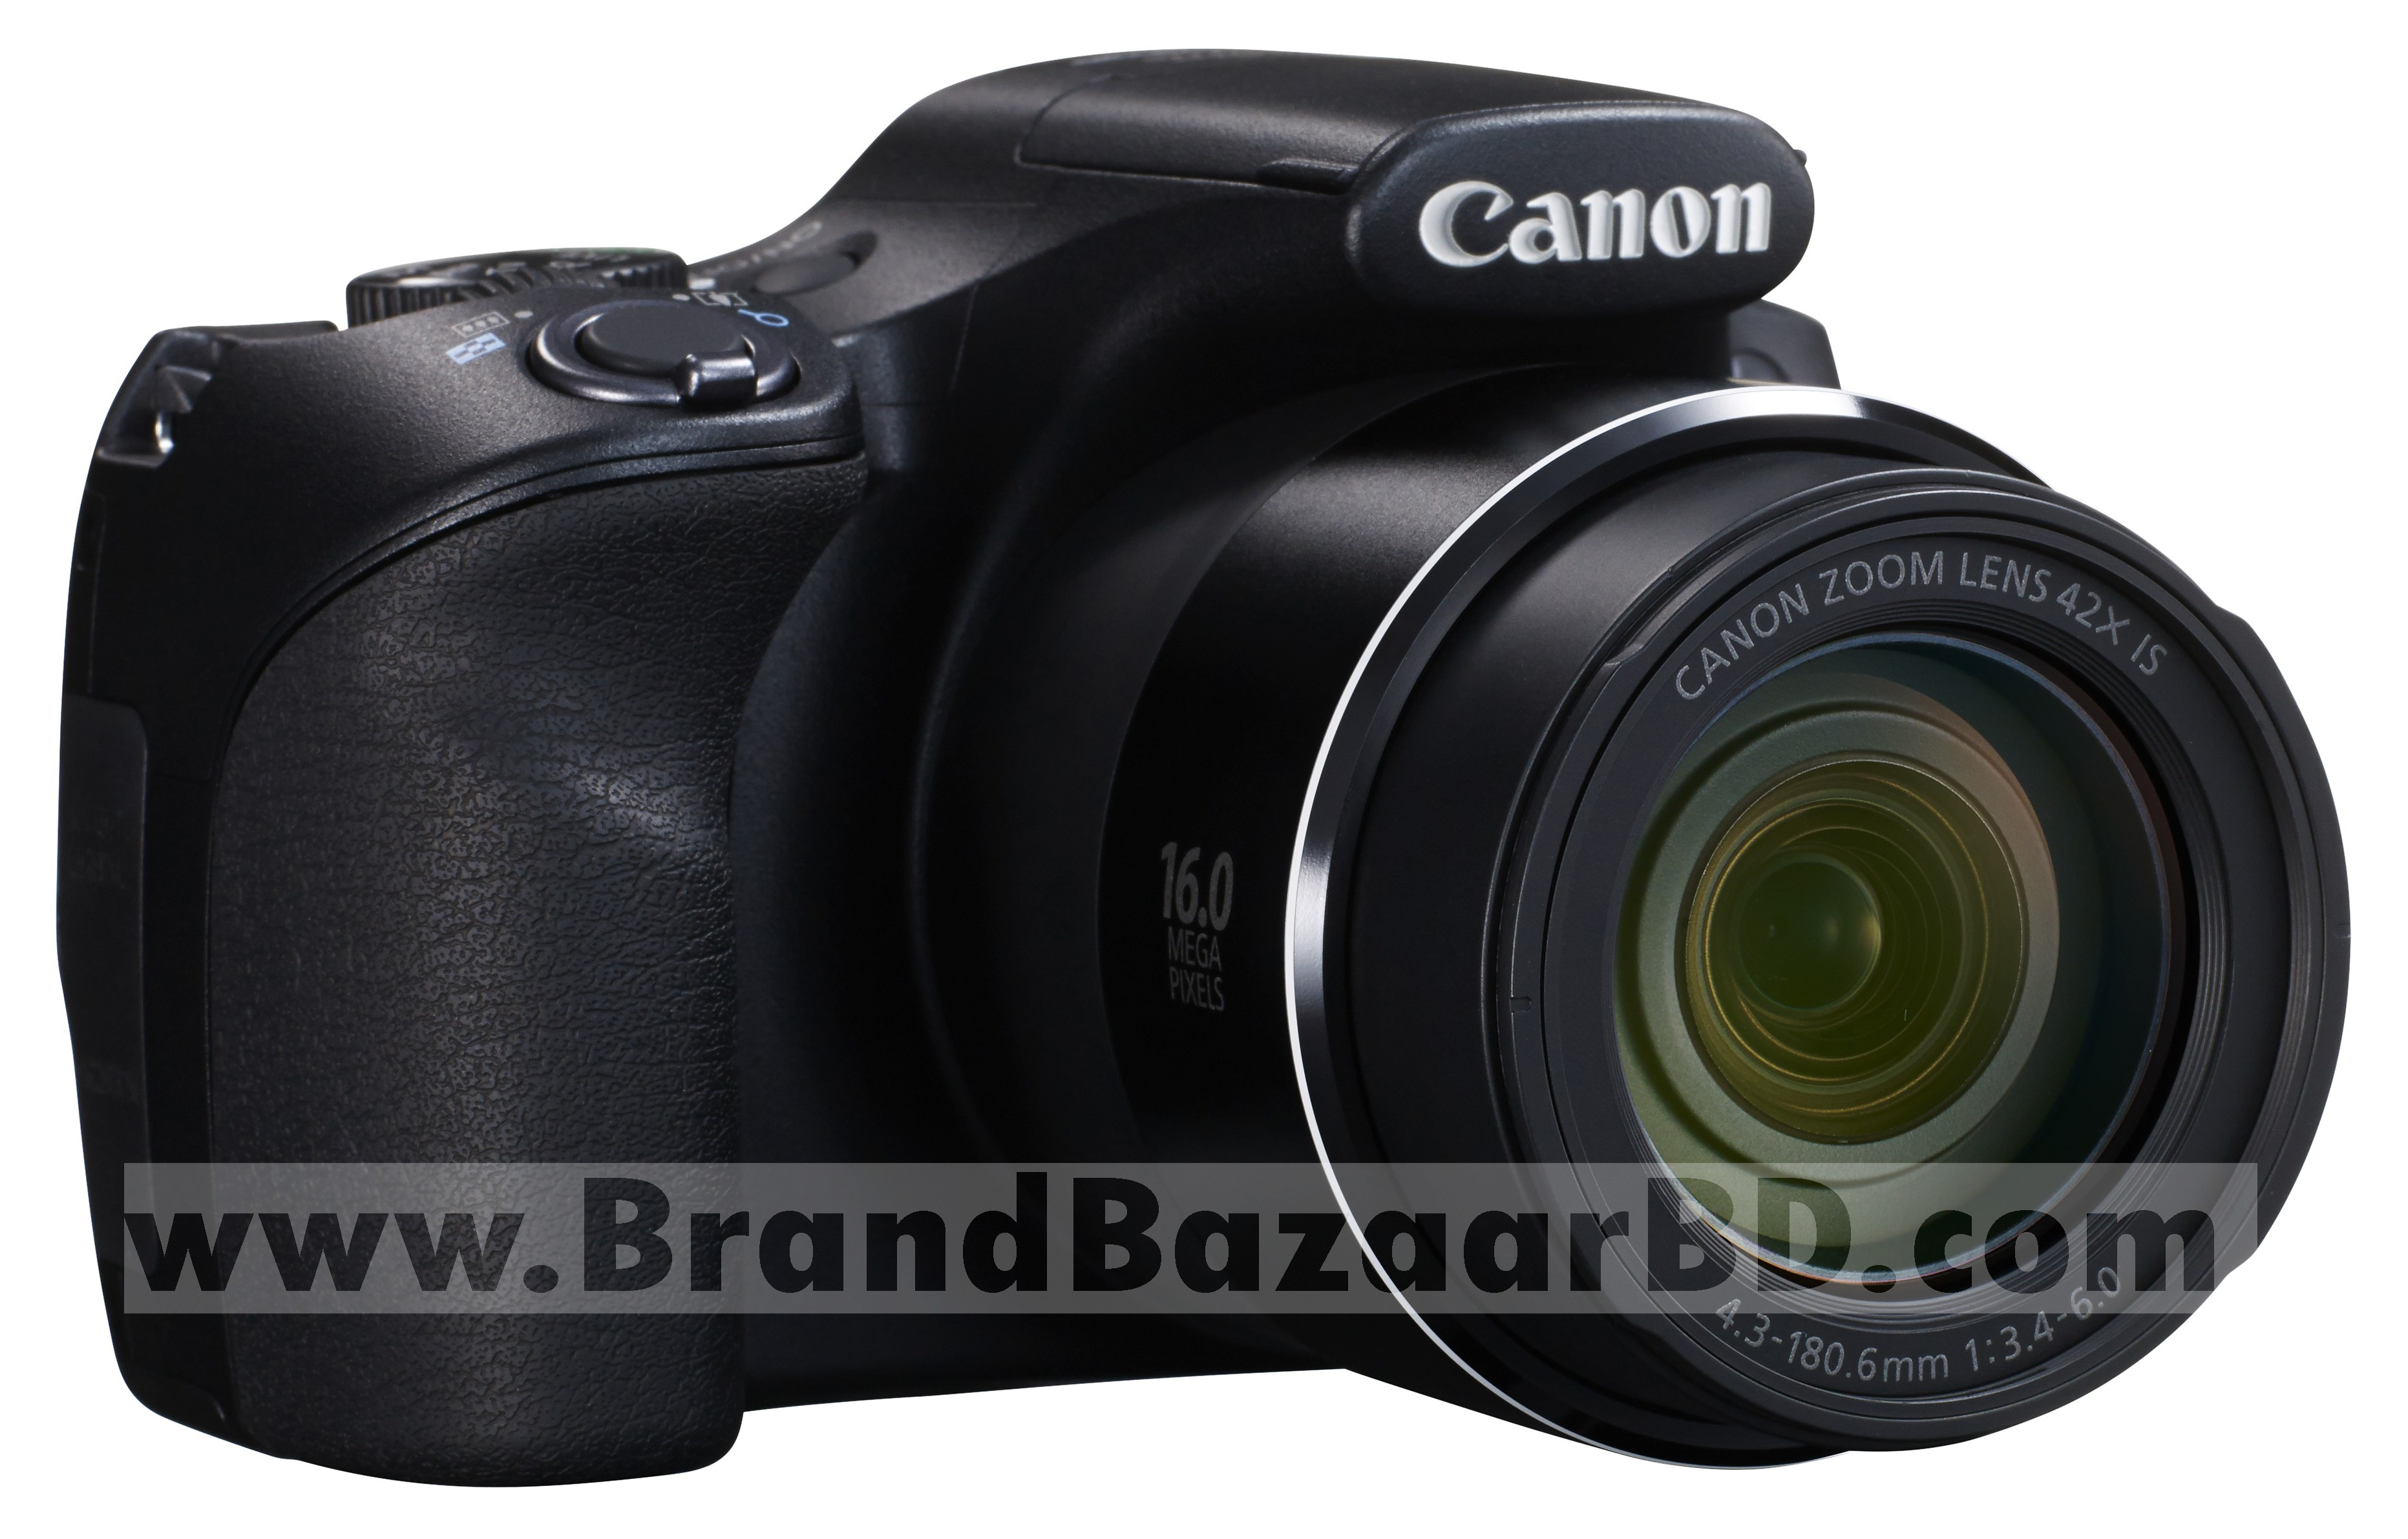 Canon Digital Camera SX 400 – Welcome to BrandBazaarBD.com | Best ...